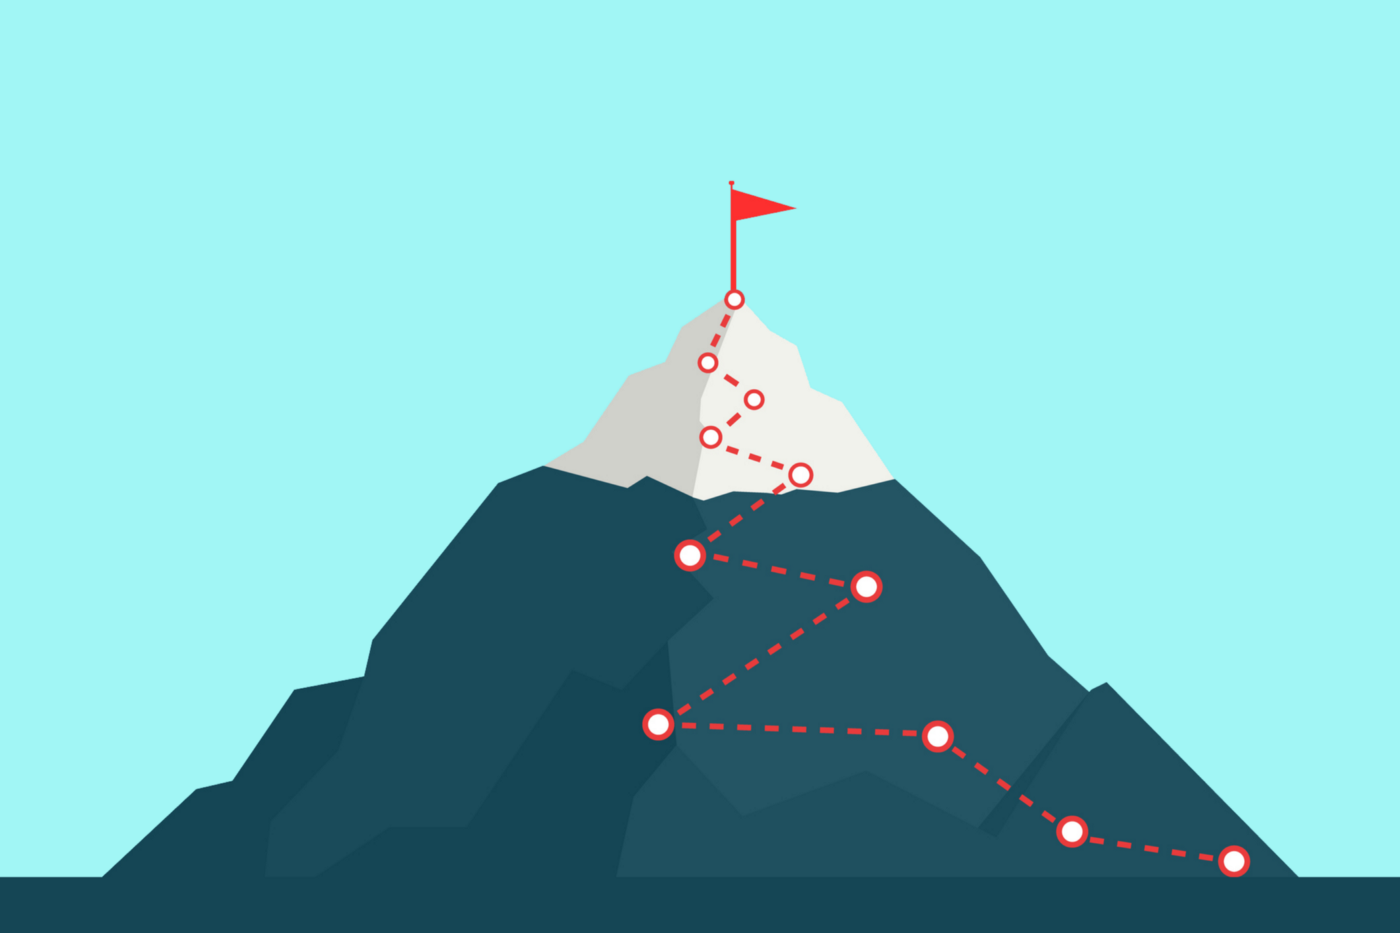 Illustration of a mountain with a red flag at its peak and a red dotted zigzag up its face, representing a trail.